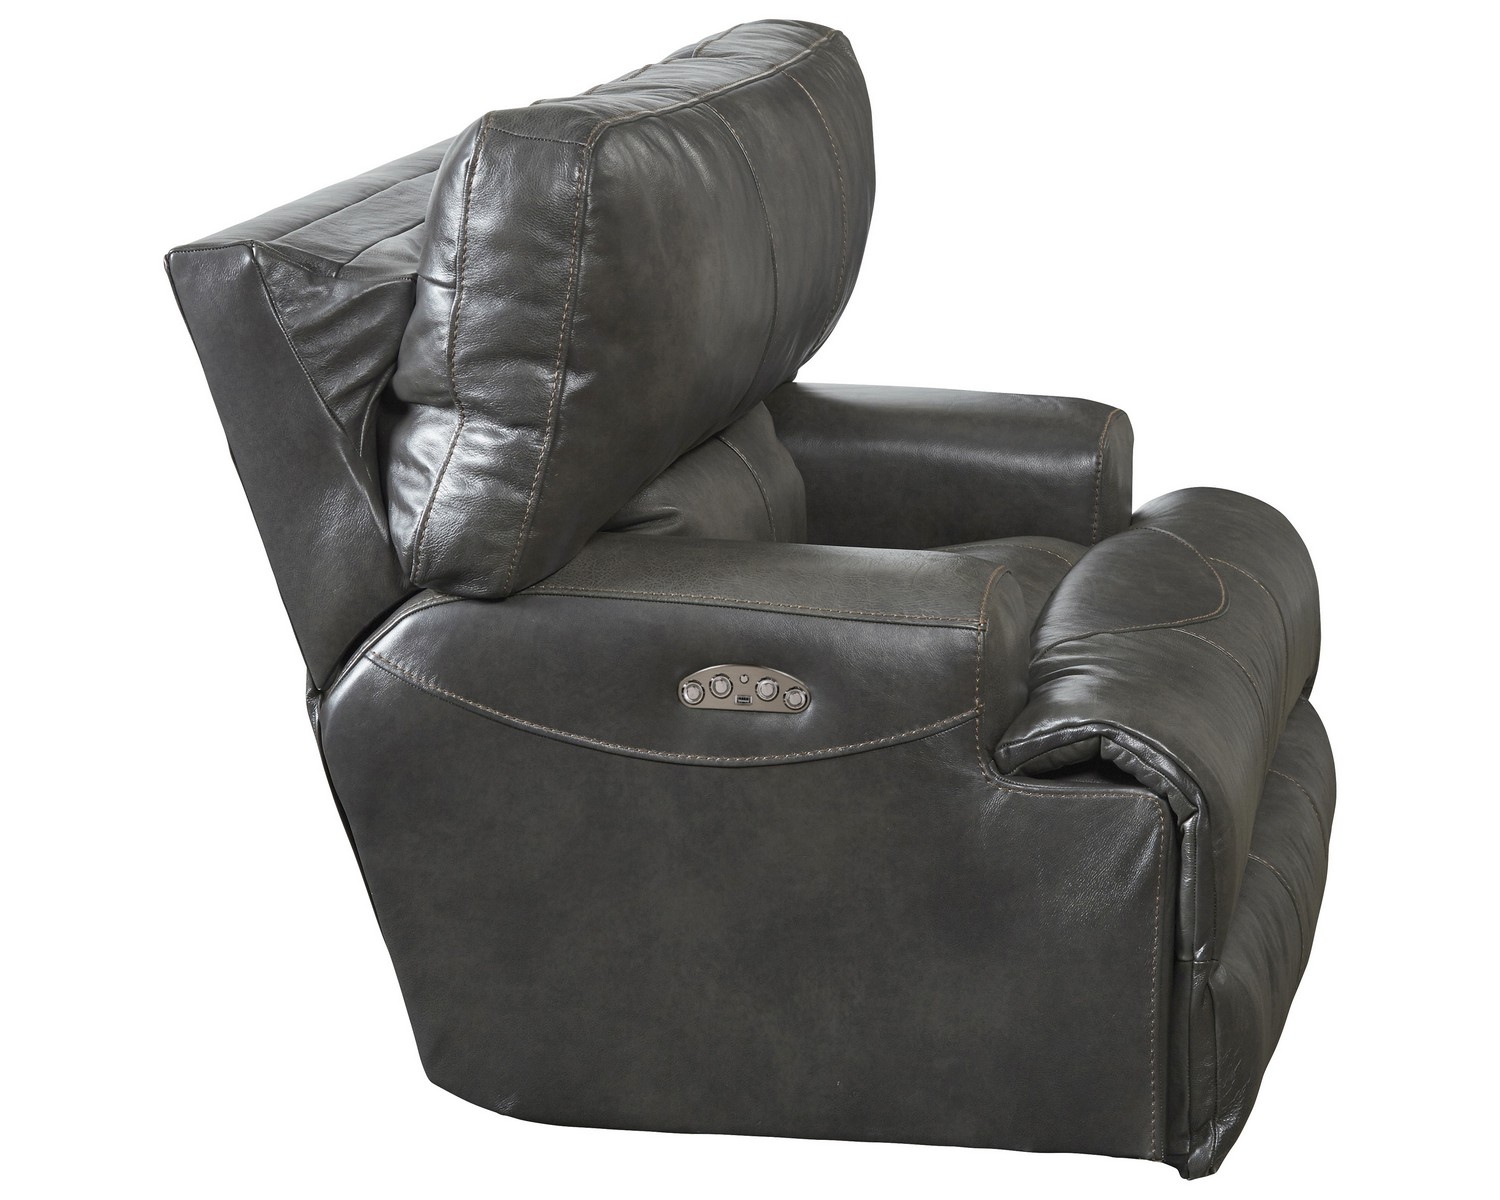 CatNapper Wembley Top Grain Italian Leather Leather Lay Flat Recliner - Steel